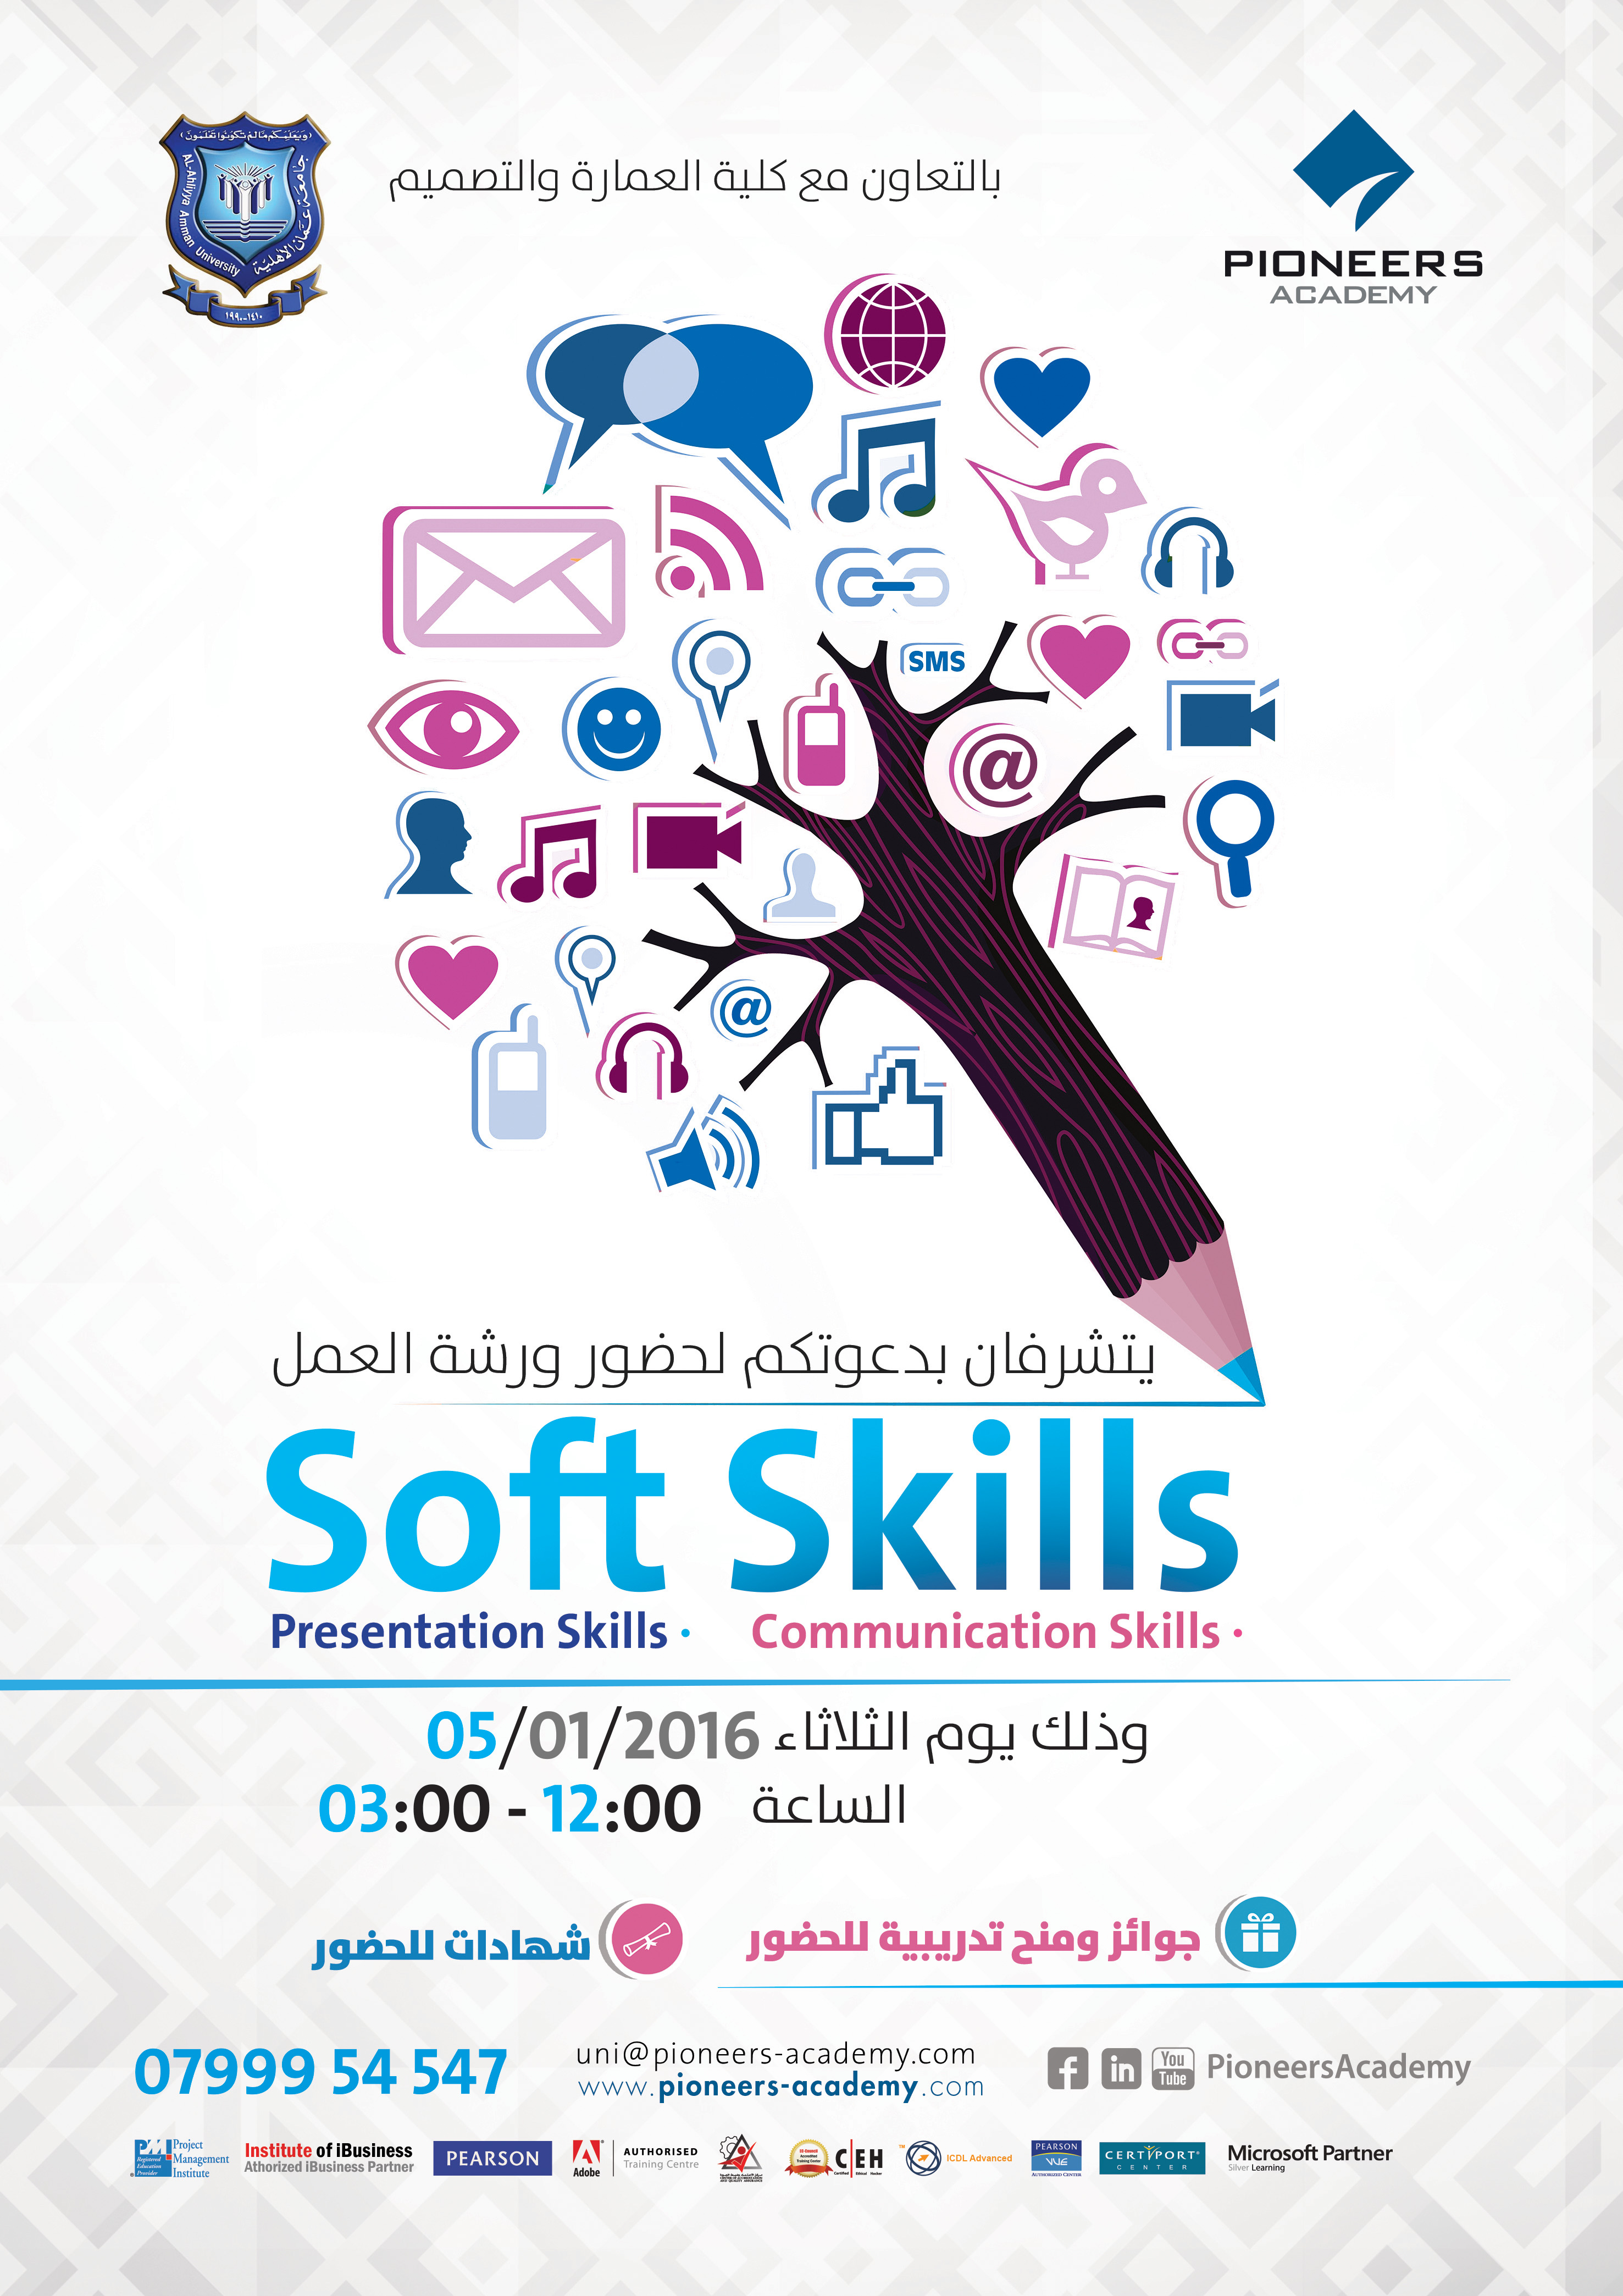 softskills عمان الأهلية poster jpg soft skills workshop which will be held on tuesday 05 01 2015 at 12 00 noon at nizar qabbani amphitheatre the workshop will include intensive lectures